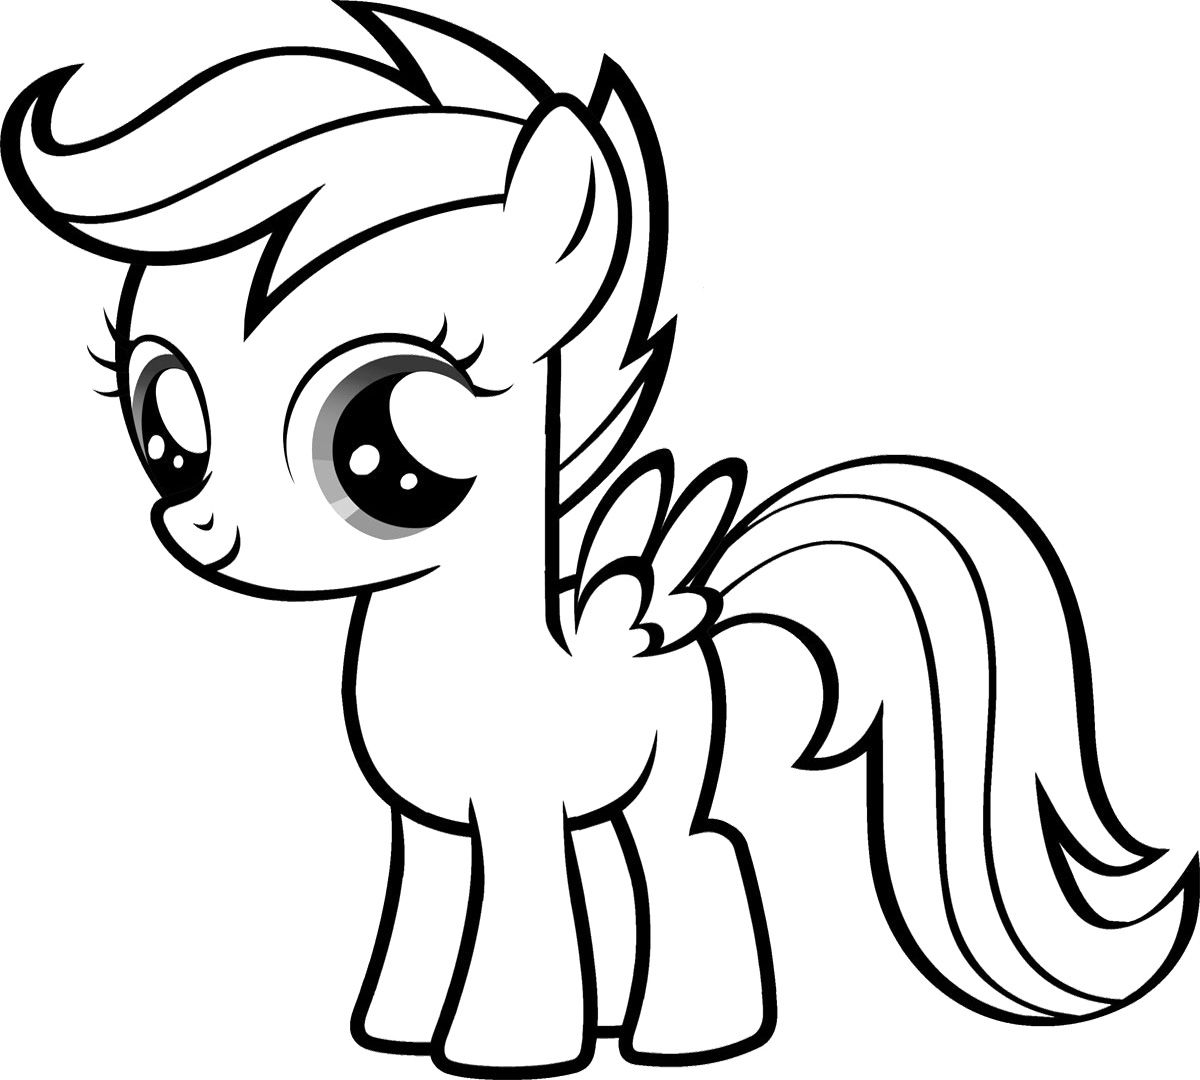 Coloring pages of my little pony